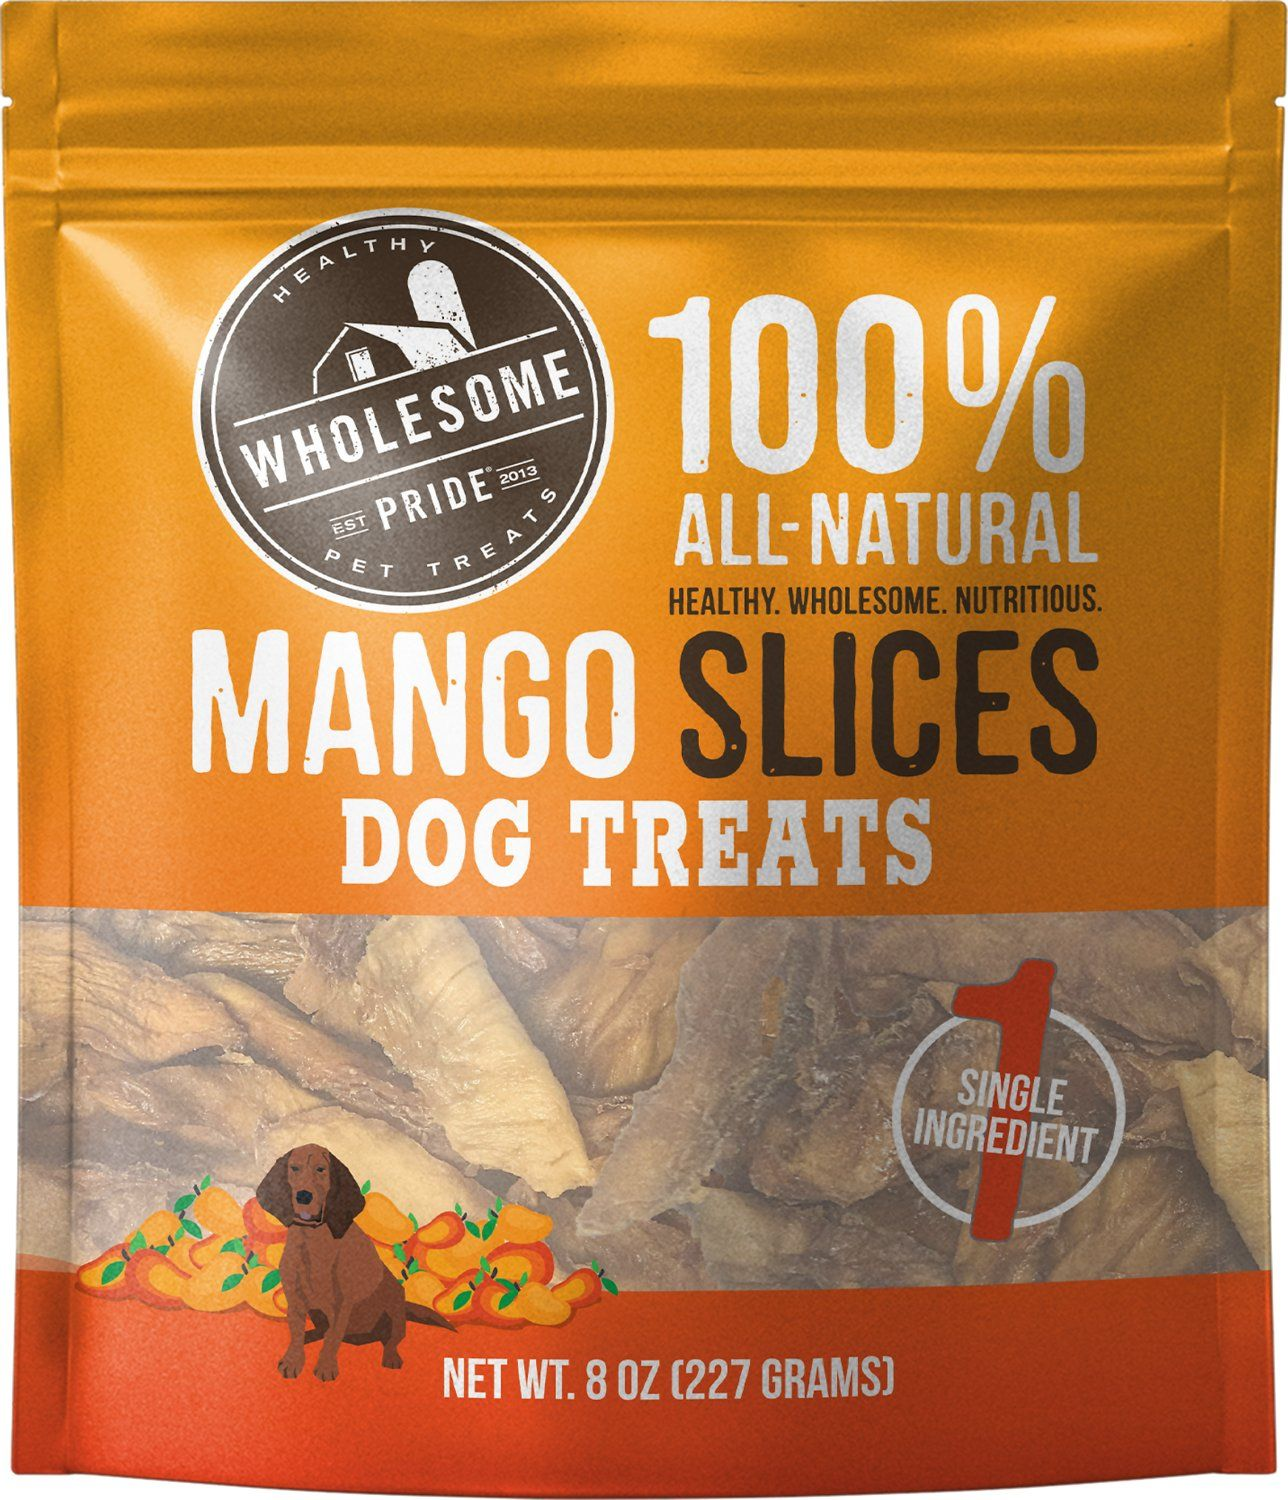 Mango Slices Dog Treat 8oz